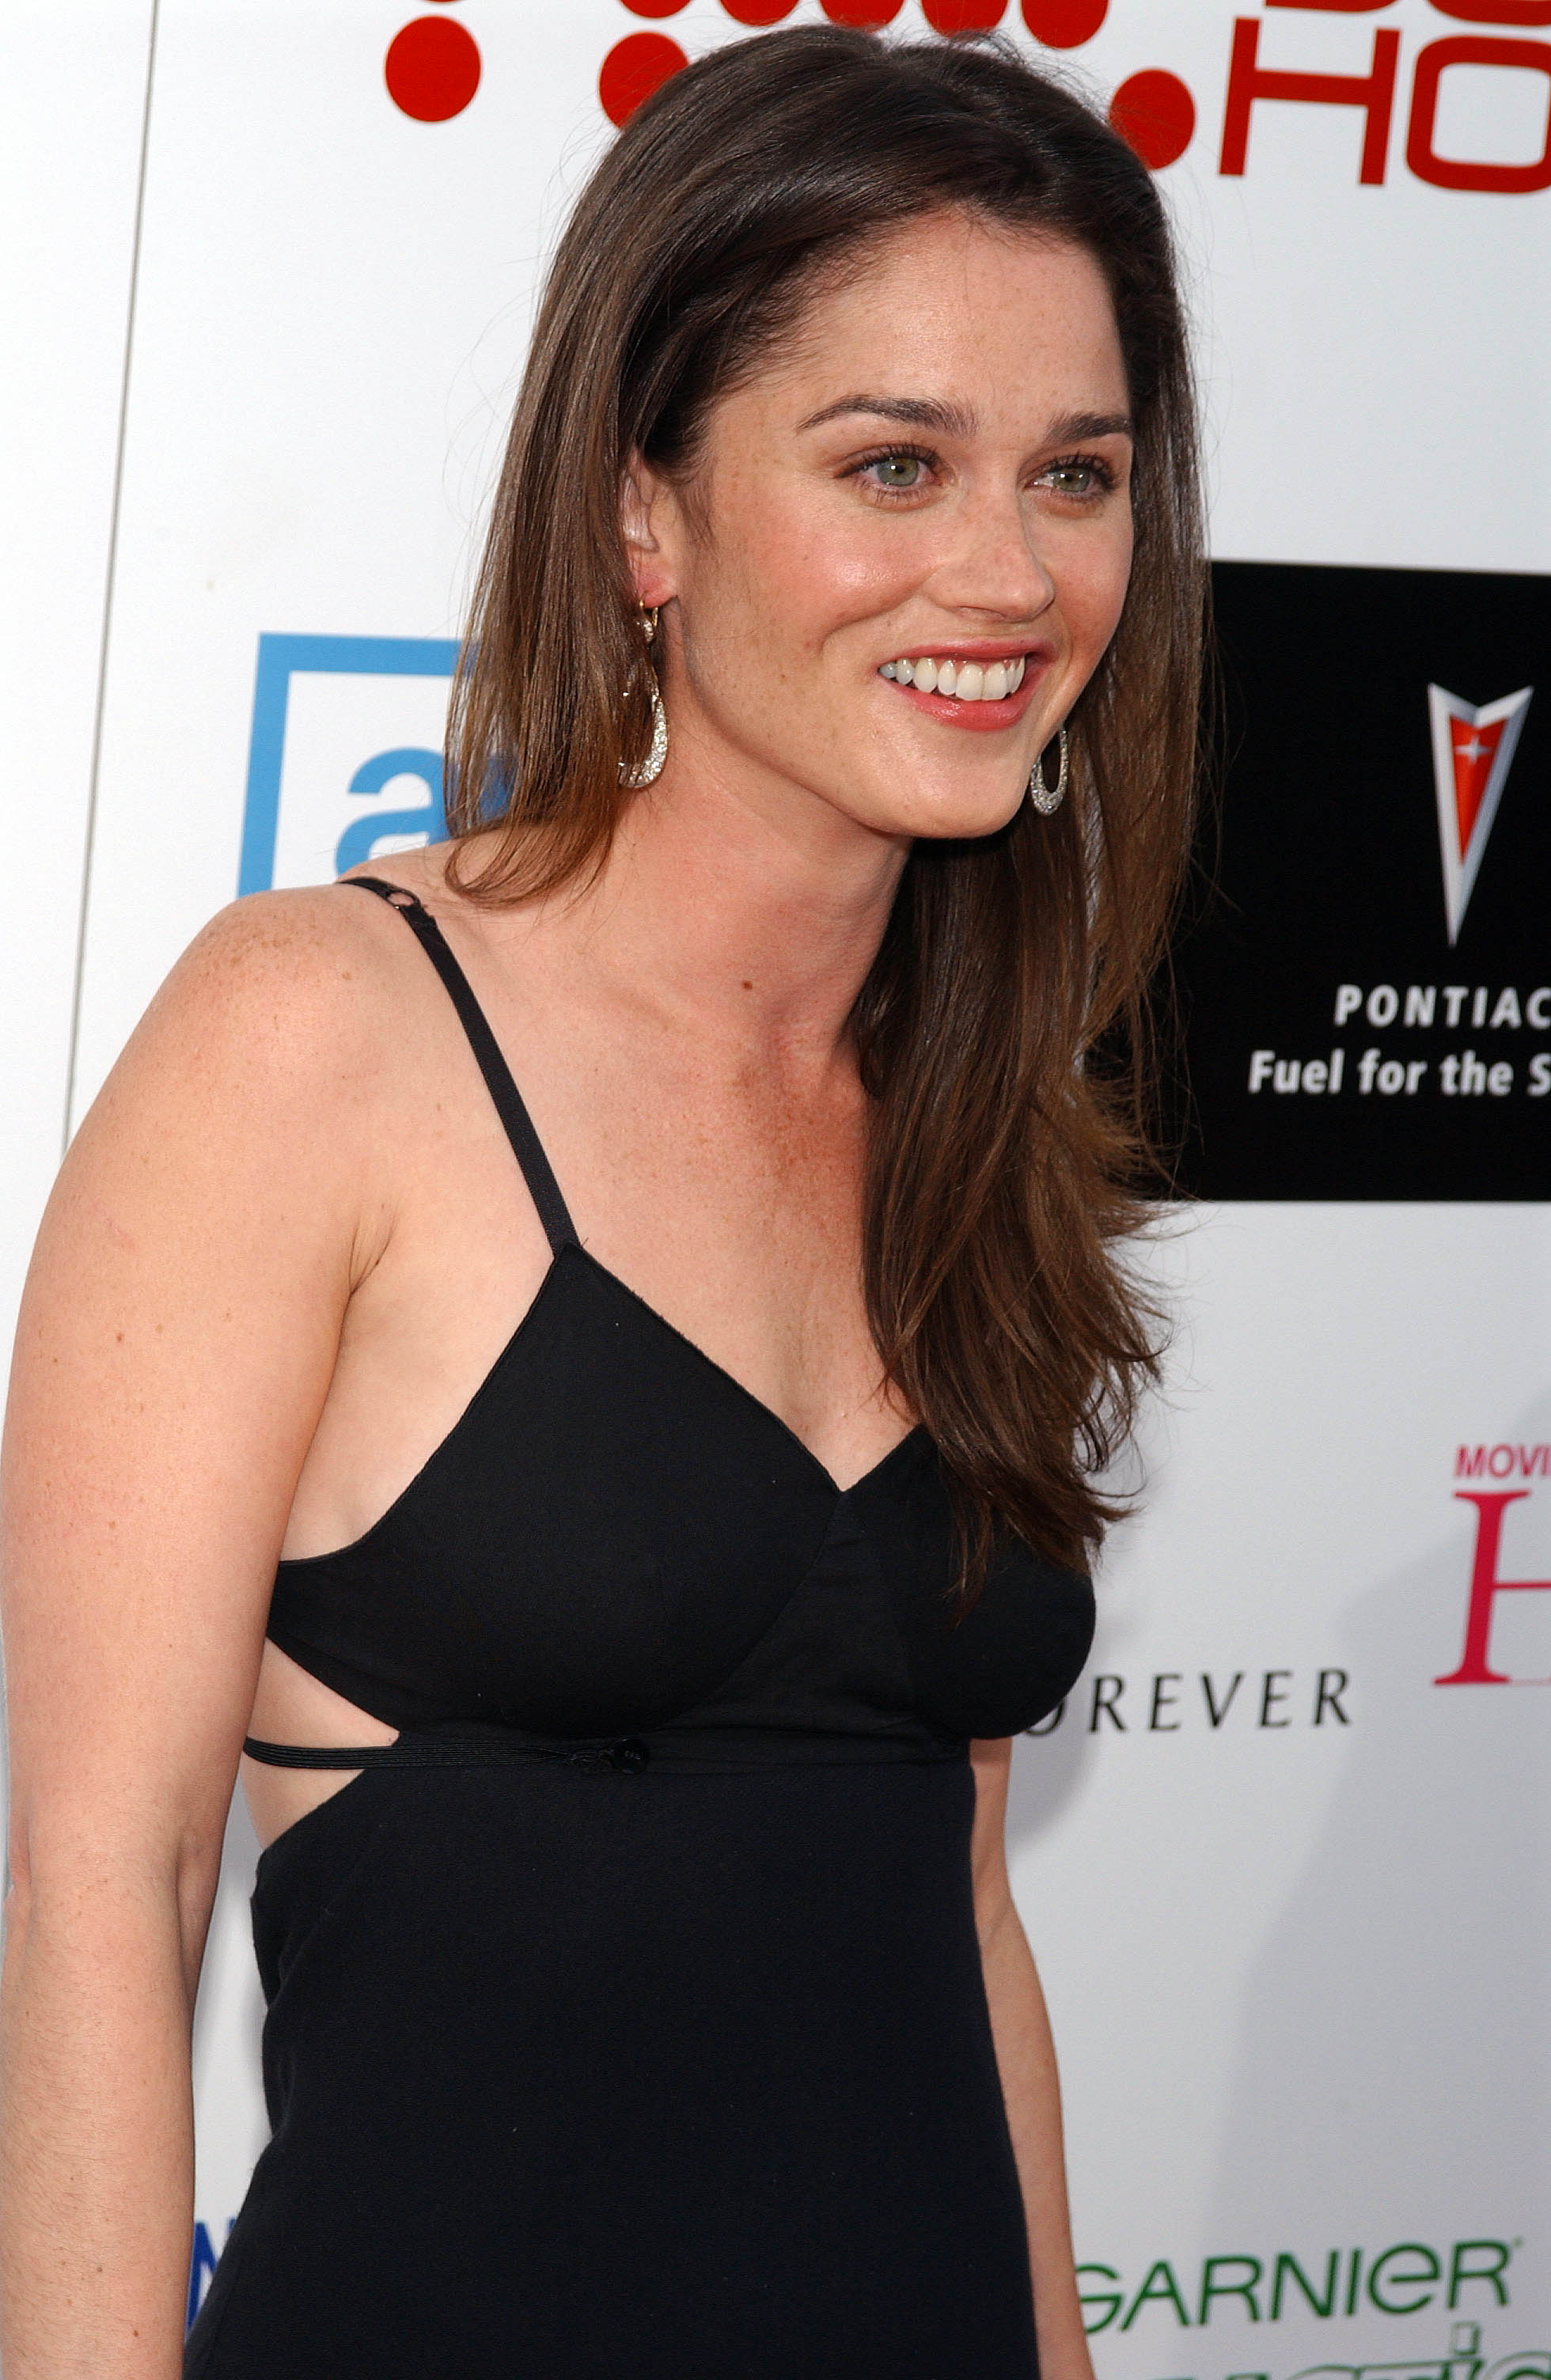 Robin Tunney earned a  million dollar salary, leaving the net worth at 4 million in 2017